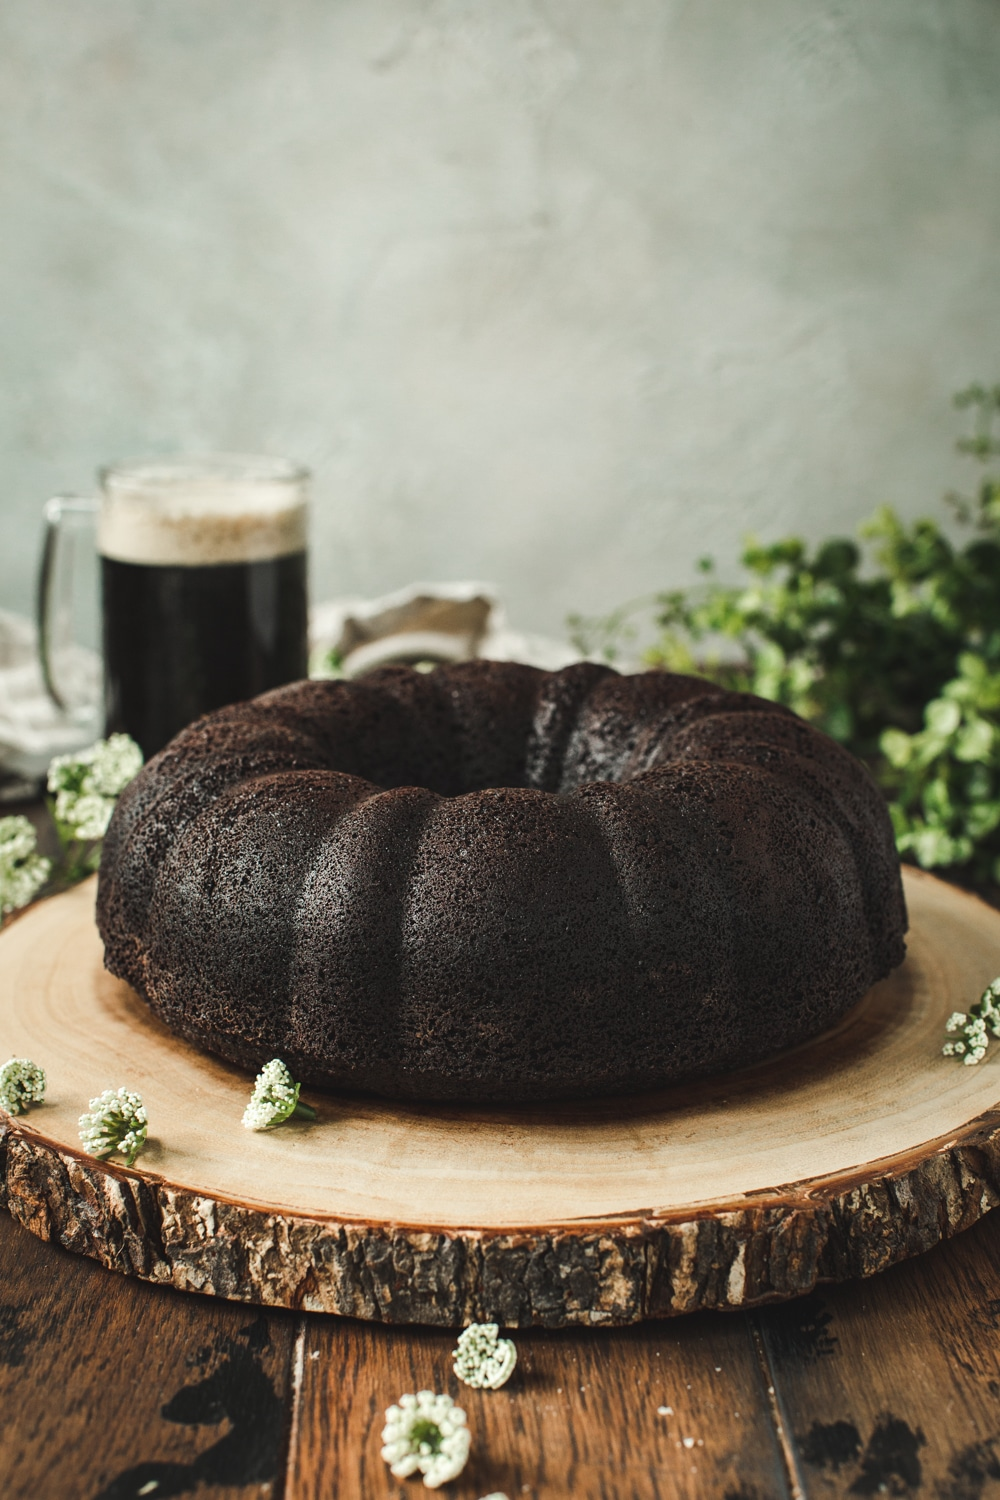 Chocolate bundt cake on a tree stump board.